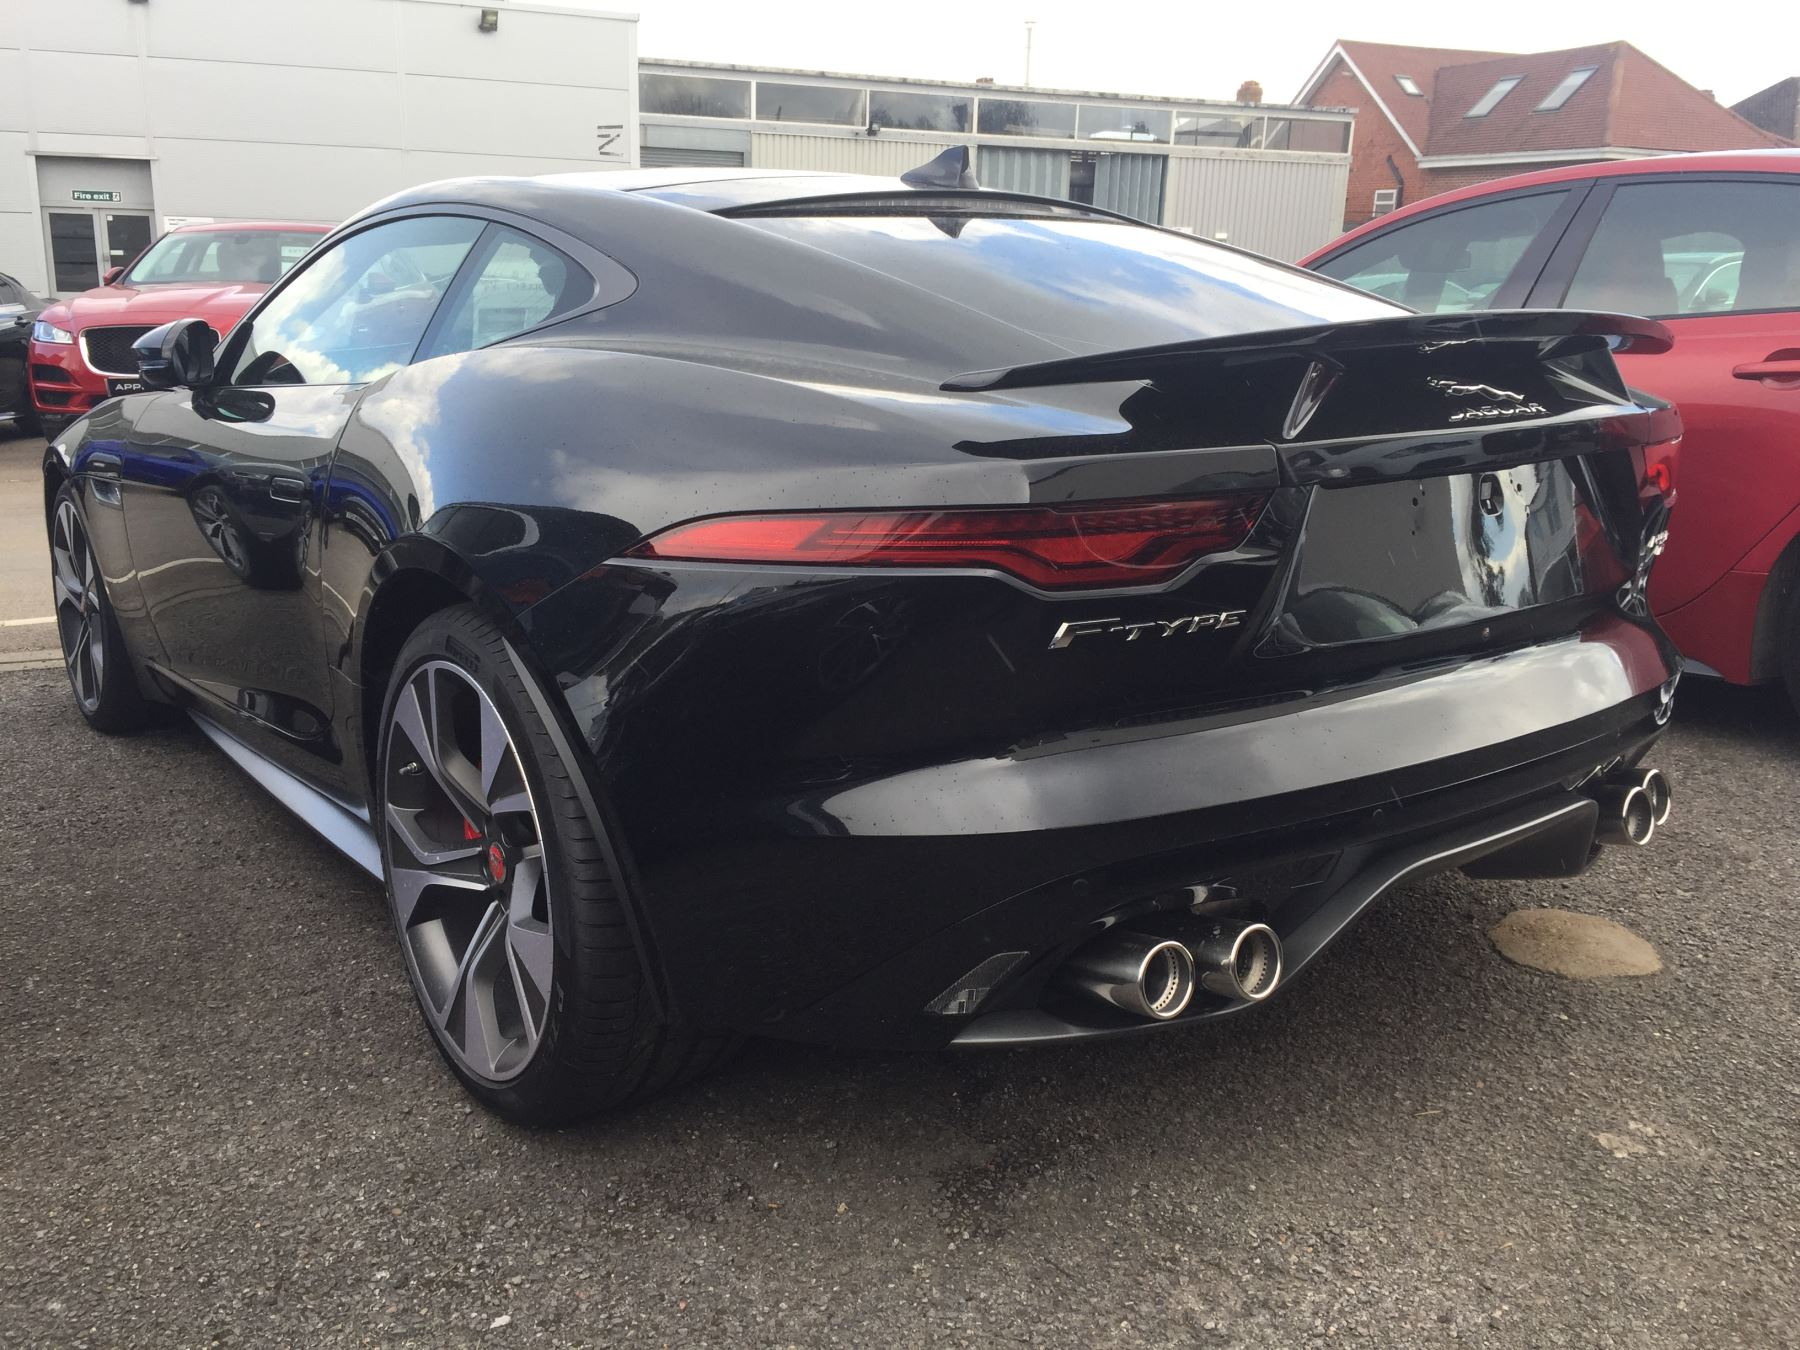 Jaguar F-TYPE 5.0 P450 S/C V8 First Edition AWD SPECIAL EDITIONS image 3